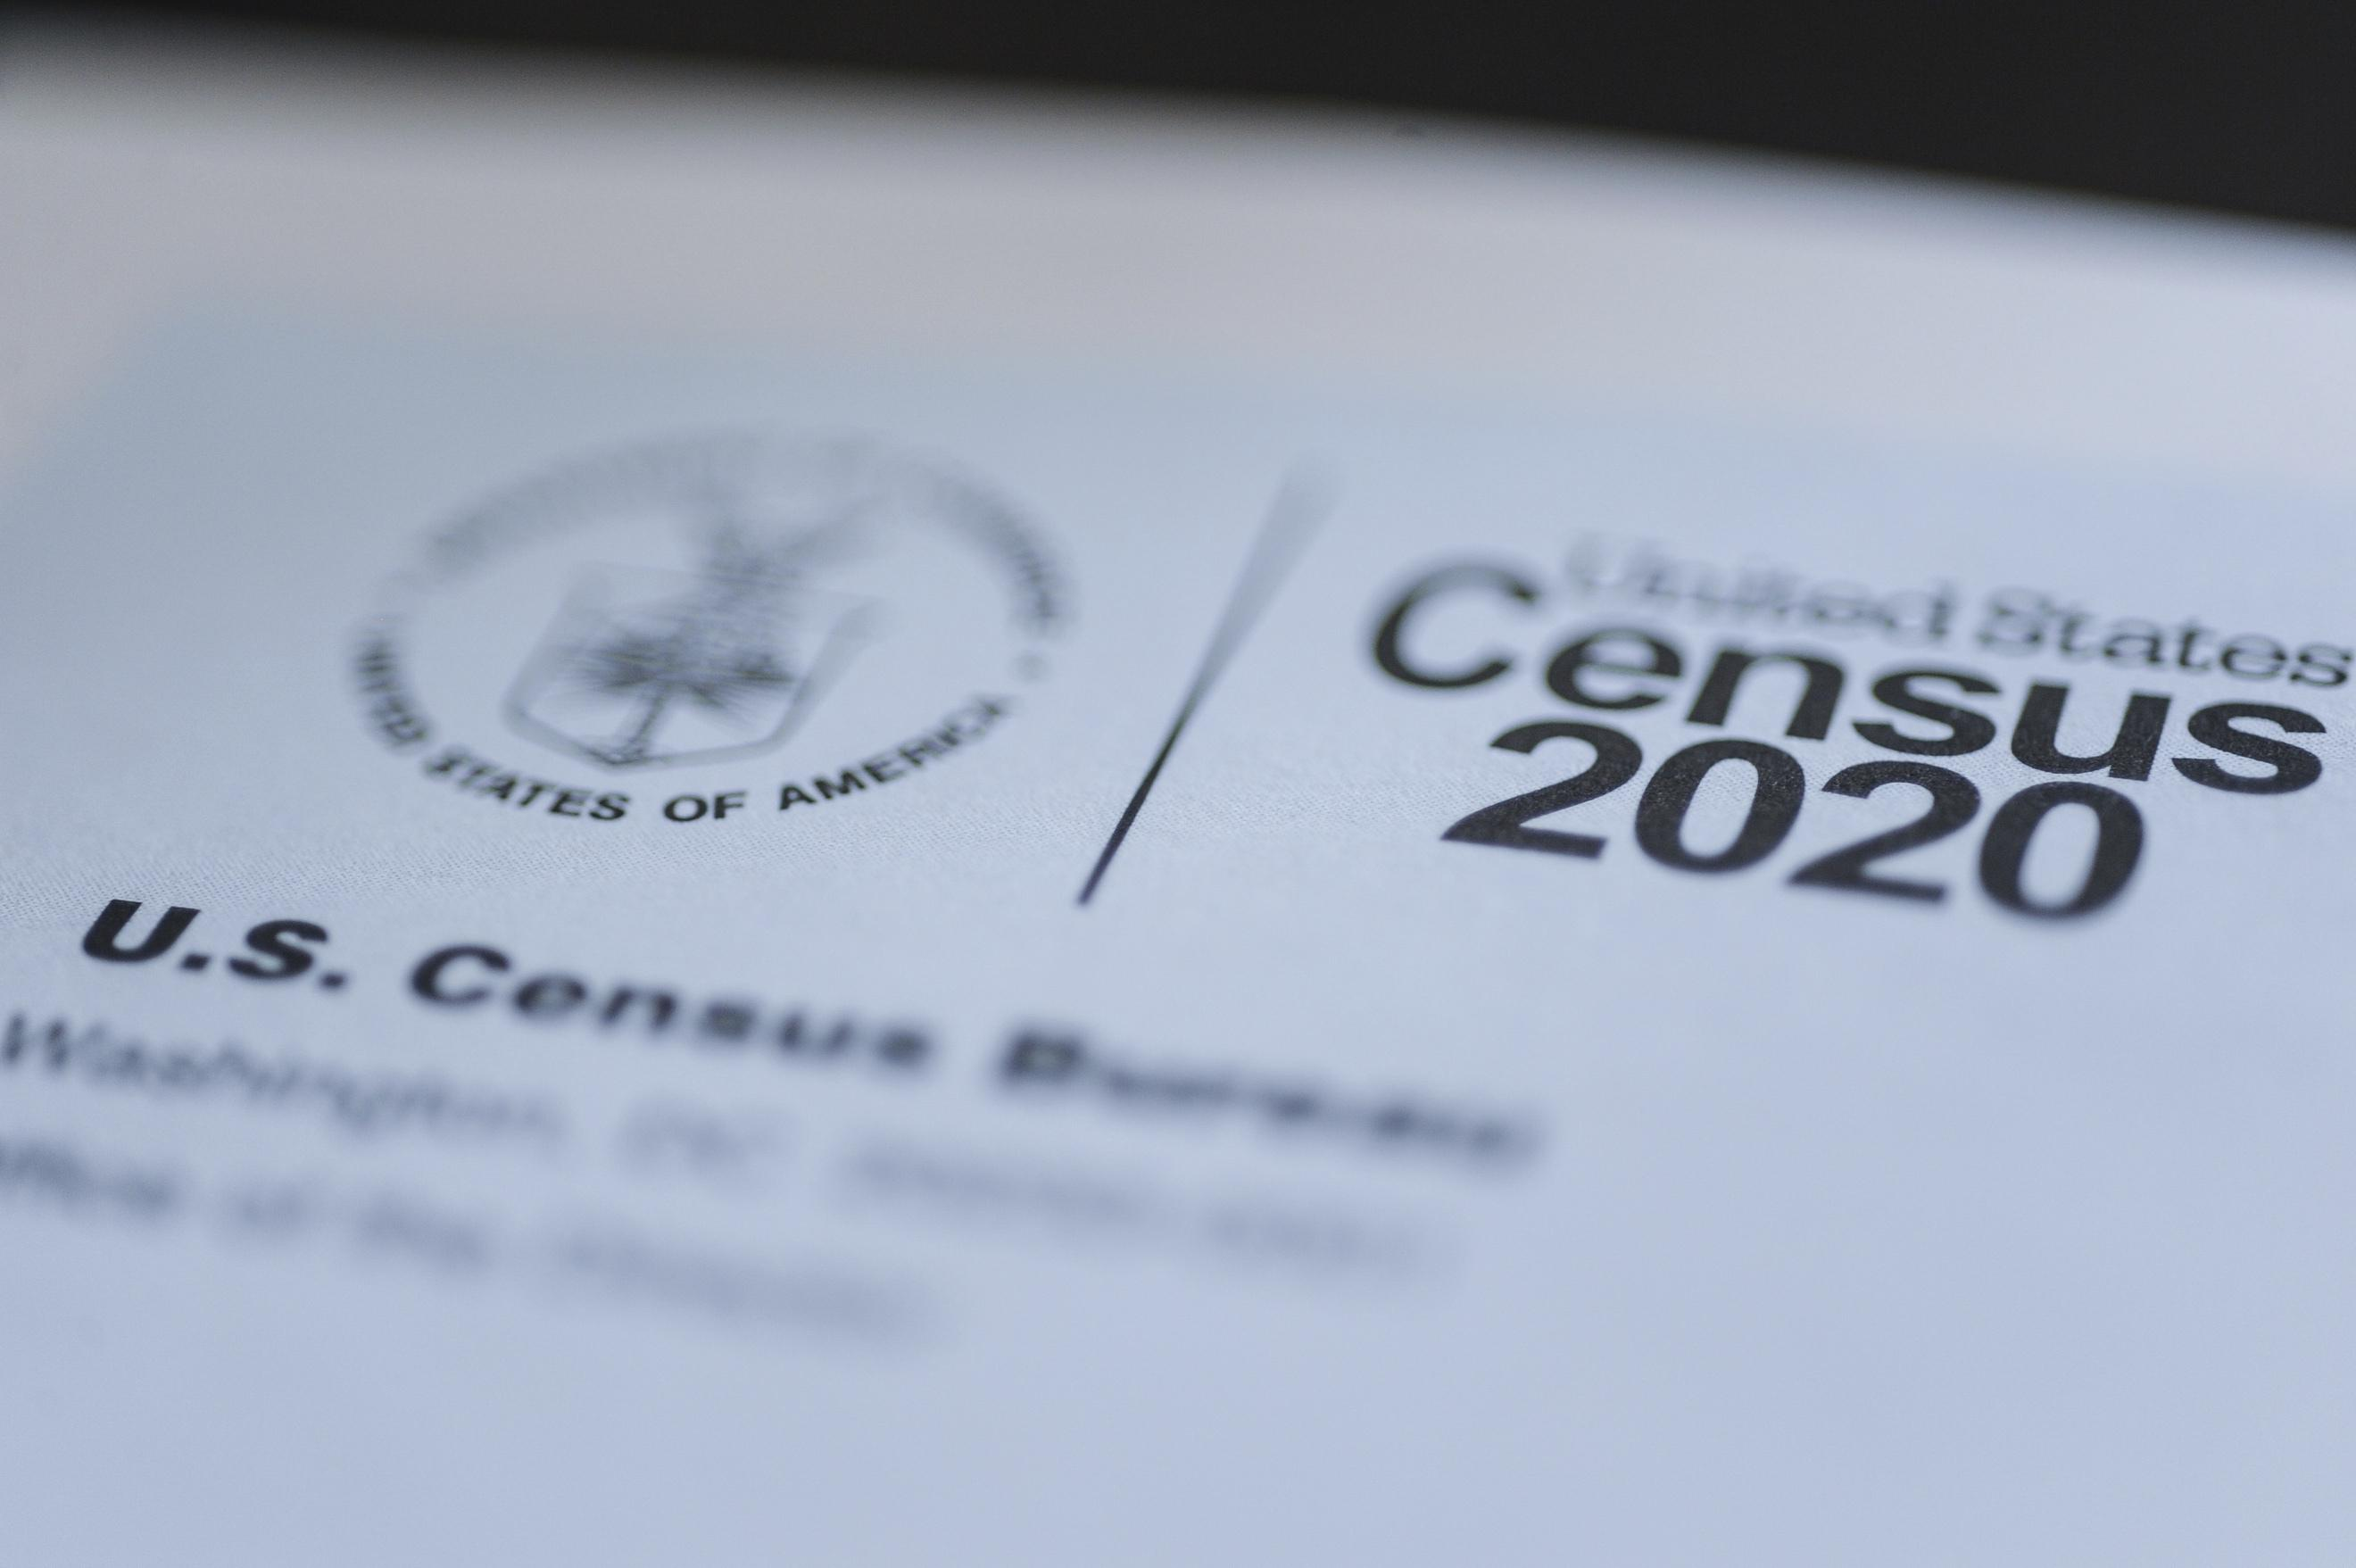 U.S. Census Bureau computer servers were exploited last year during a cybersecurity attack, but it didn't involve the 2020 census, and hackers' at